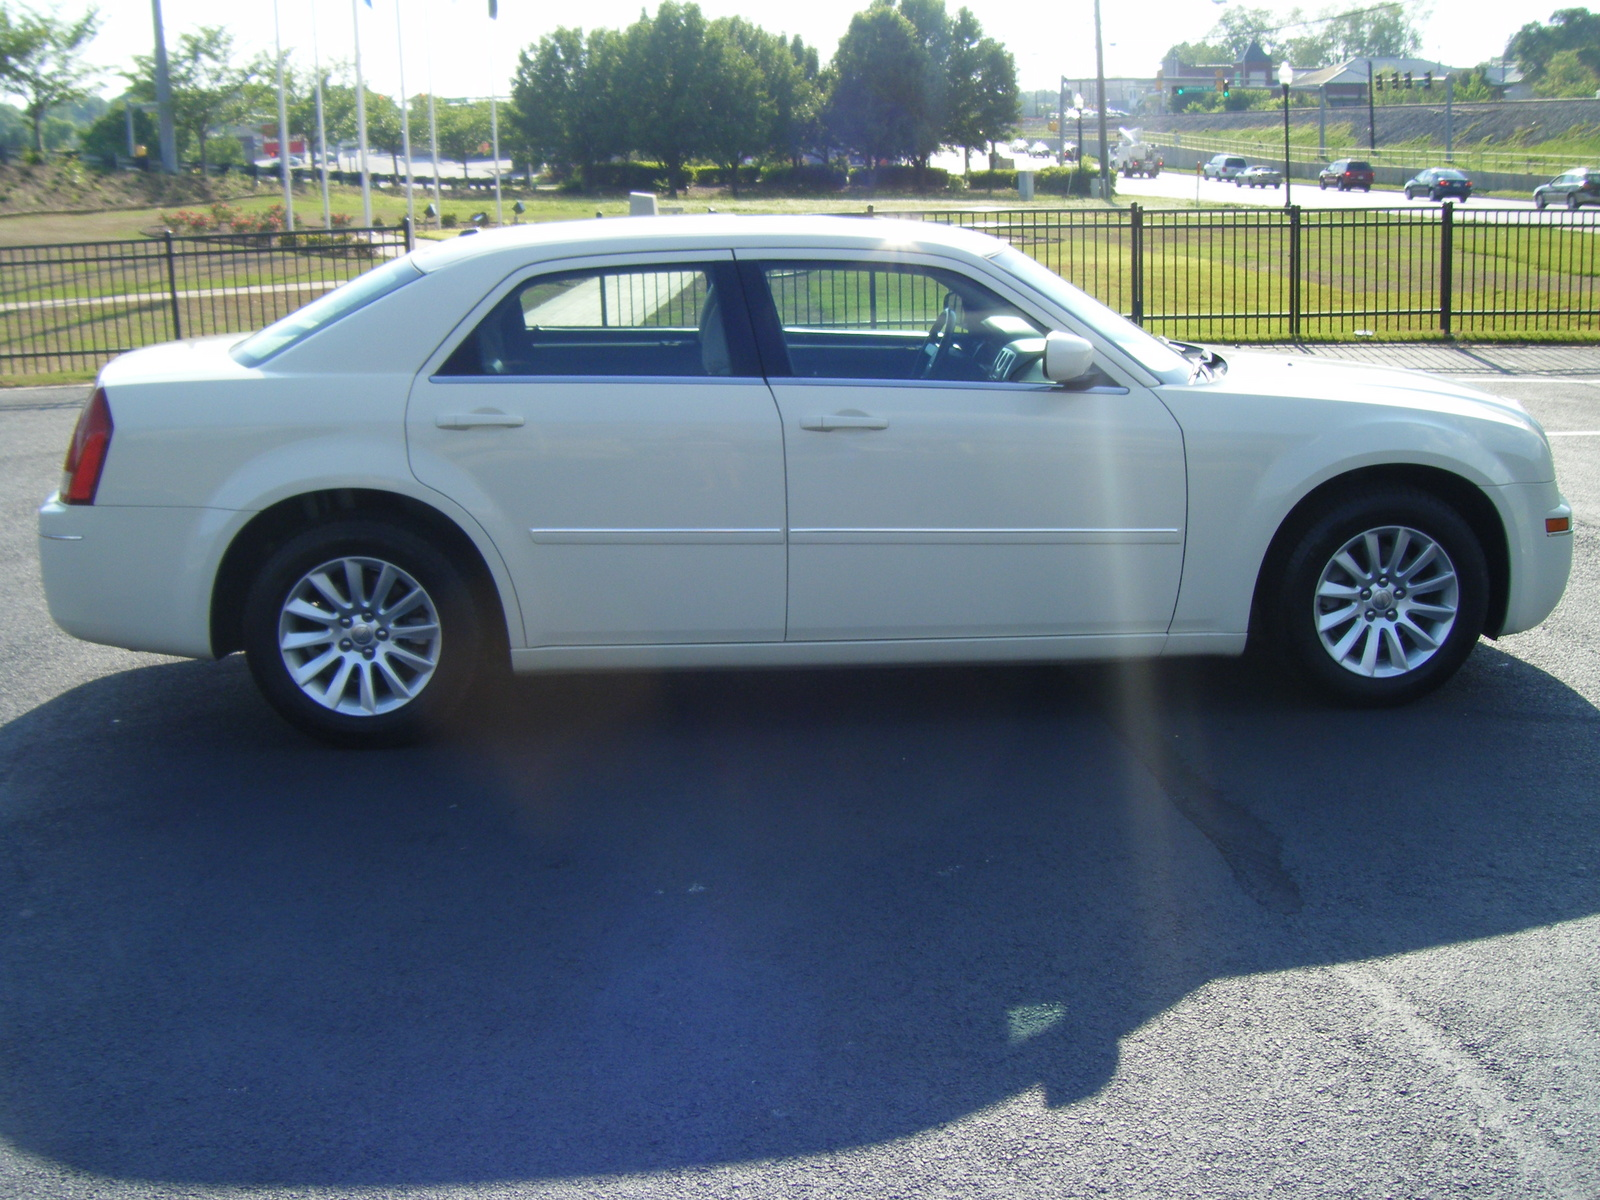 Dodge Dealers Near Me >> 2007 Chrysler 300 - Pictures - CarGurus